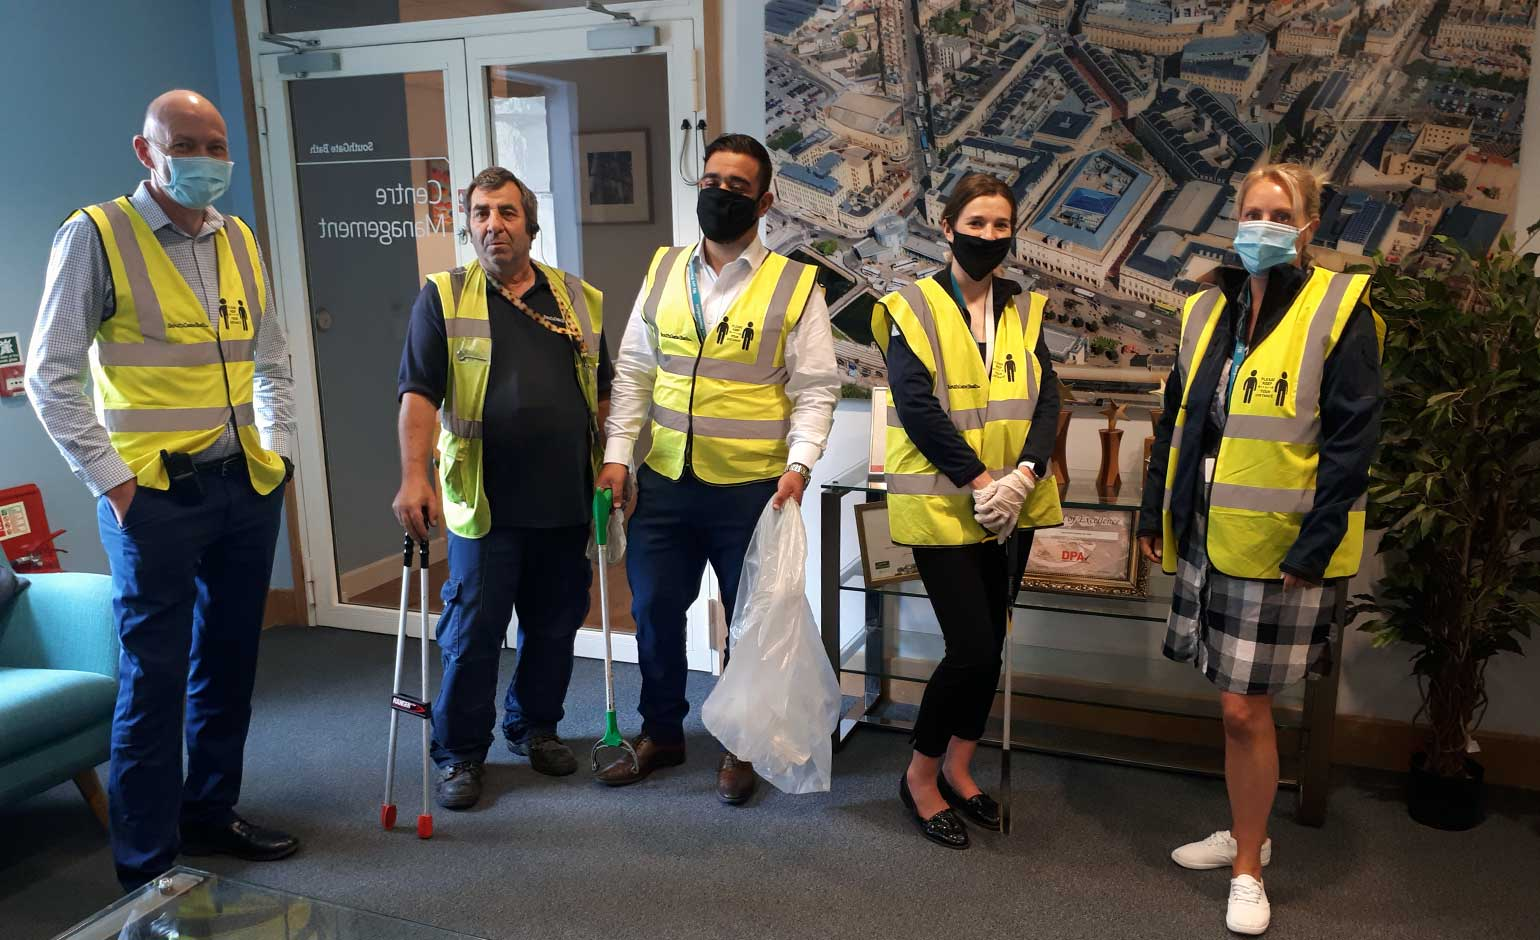 SouthGate team joins spring clean event and collects 60kg of rubbish